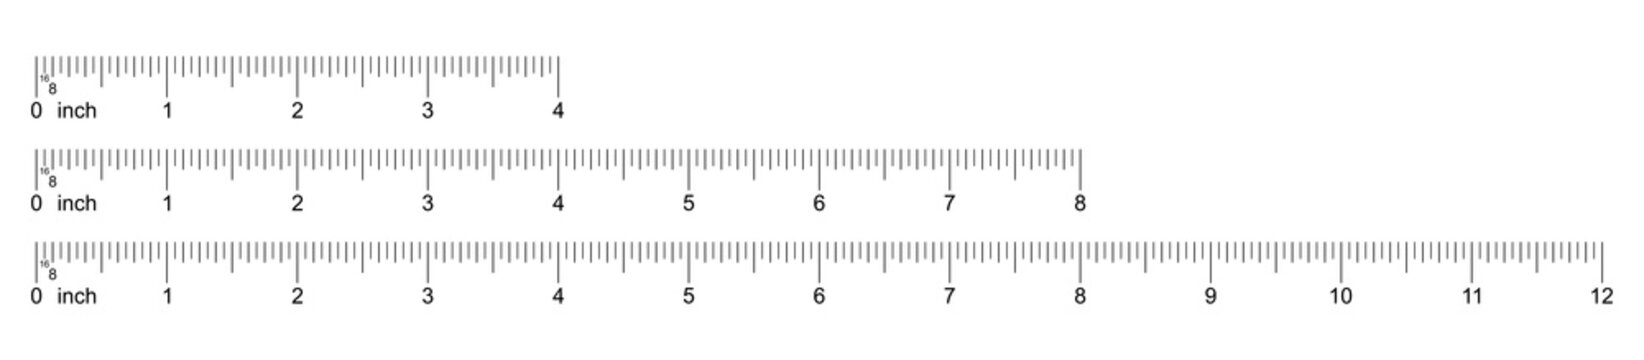 Ruler 4, 8, 12 inch. Set of ruler 4, 8, 12 inch. Measuring tool. Ruler inch scale grid. Size indicator units. Metric size indicators. Vector